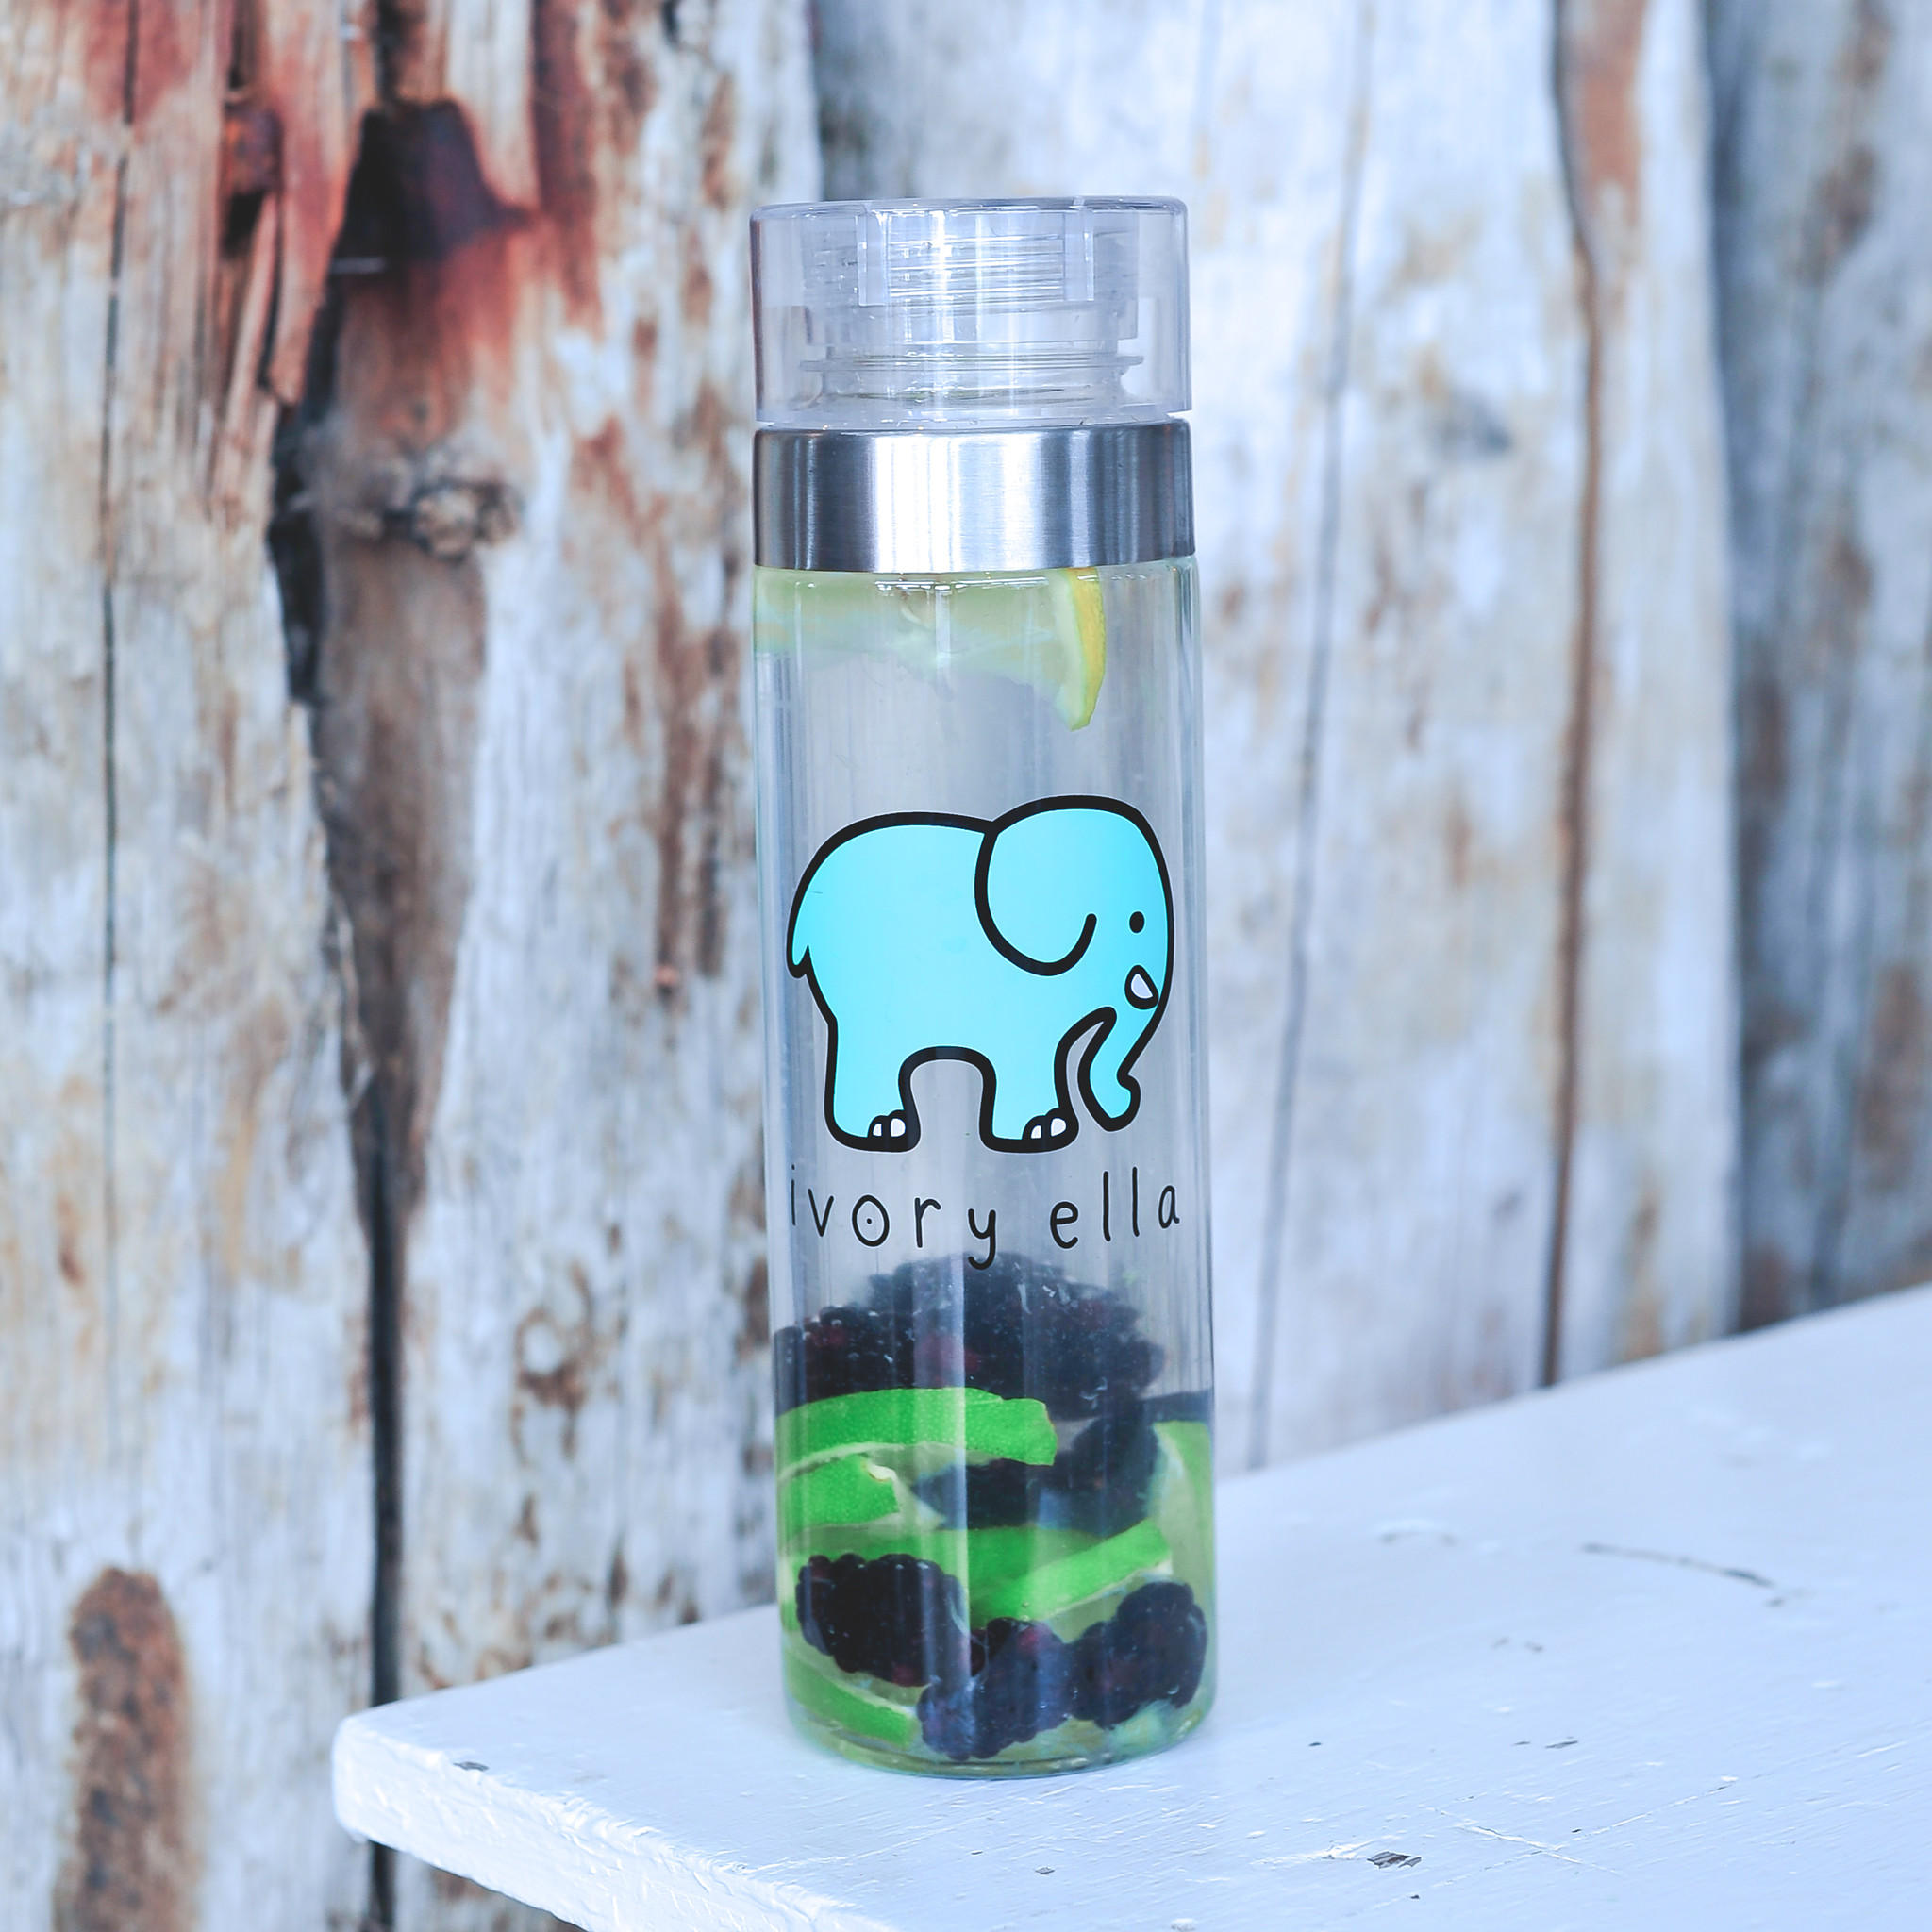 0f8564c62 Ivory Ella Water Bottle Review - Image Collections Bottle